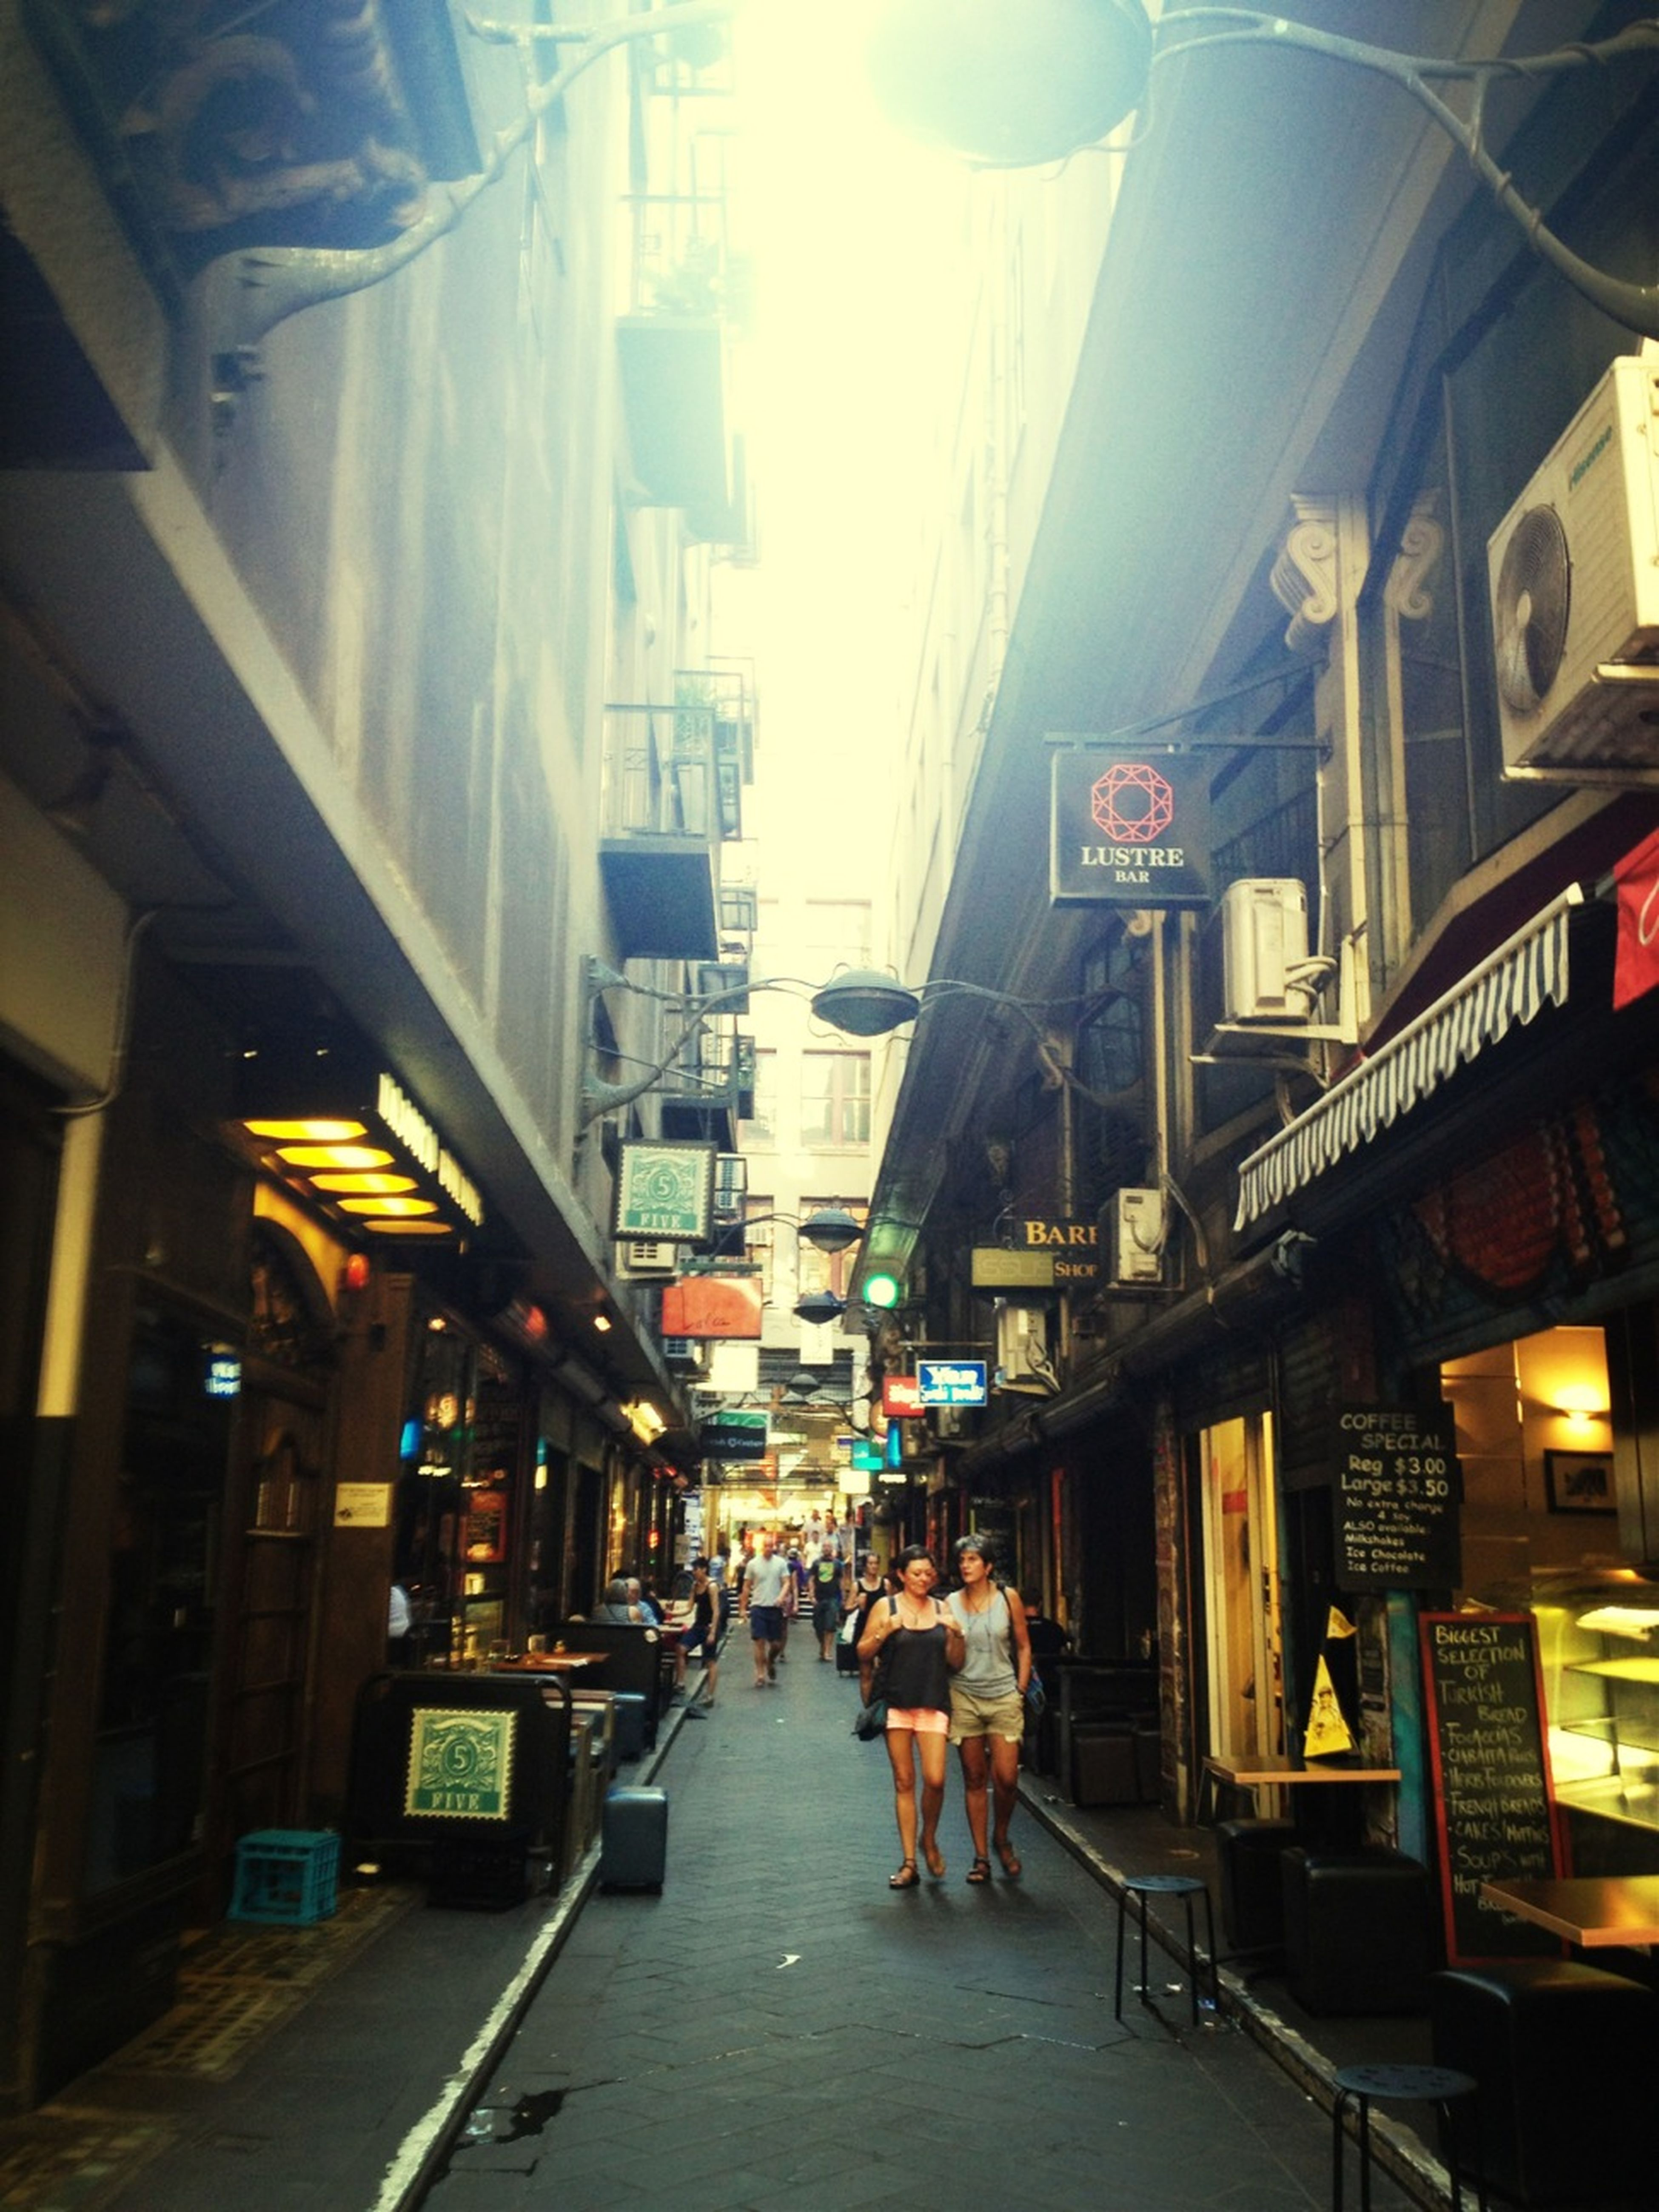 Laneway, Where I Was Waiting For You.